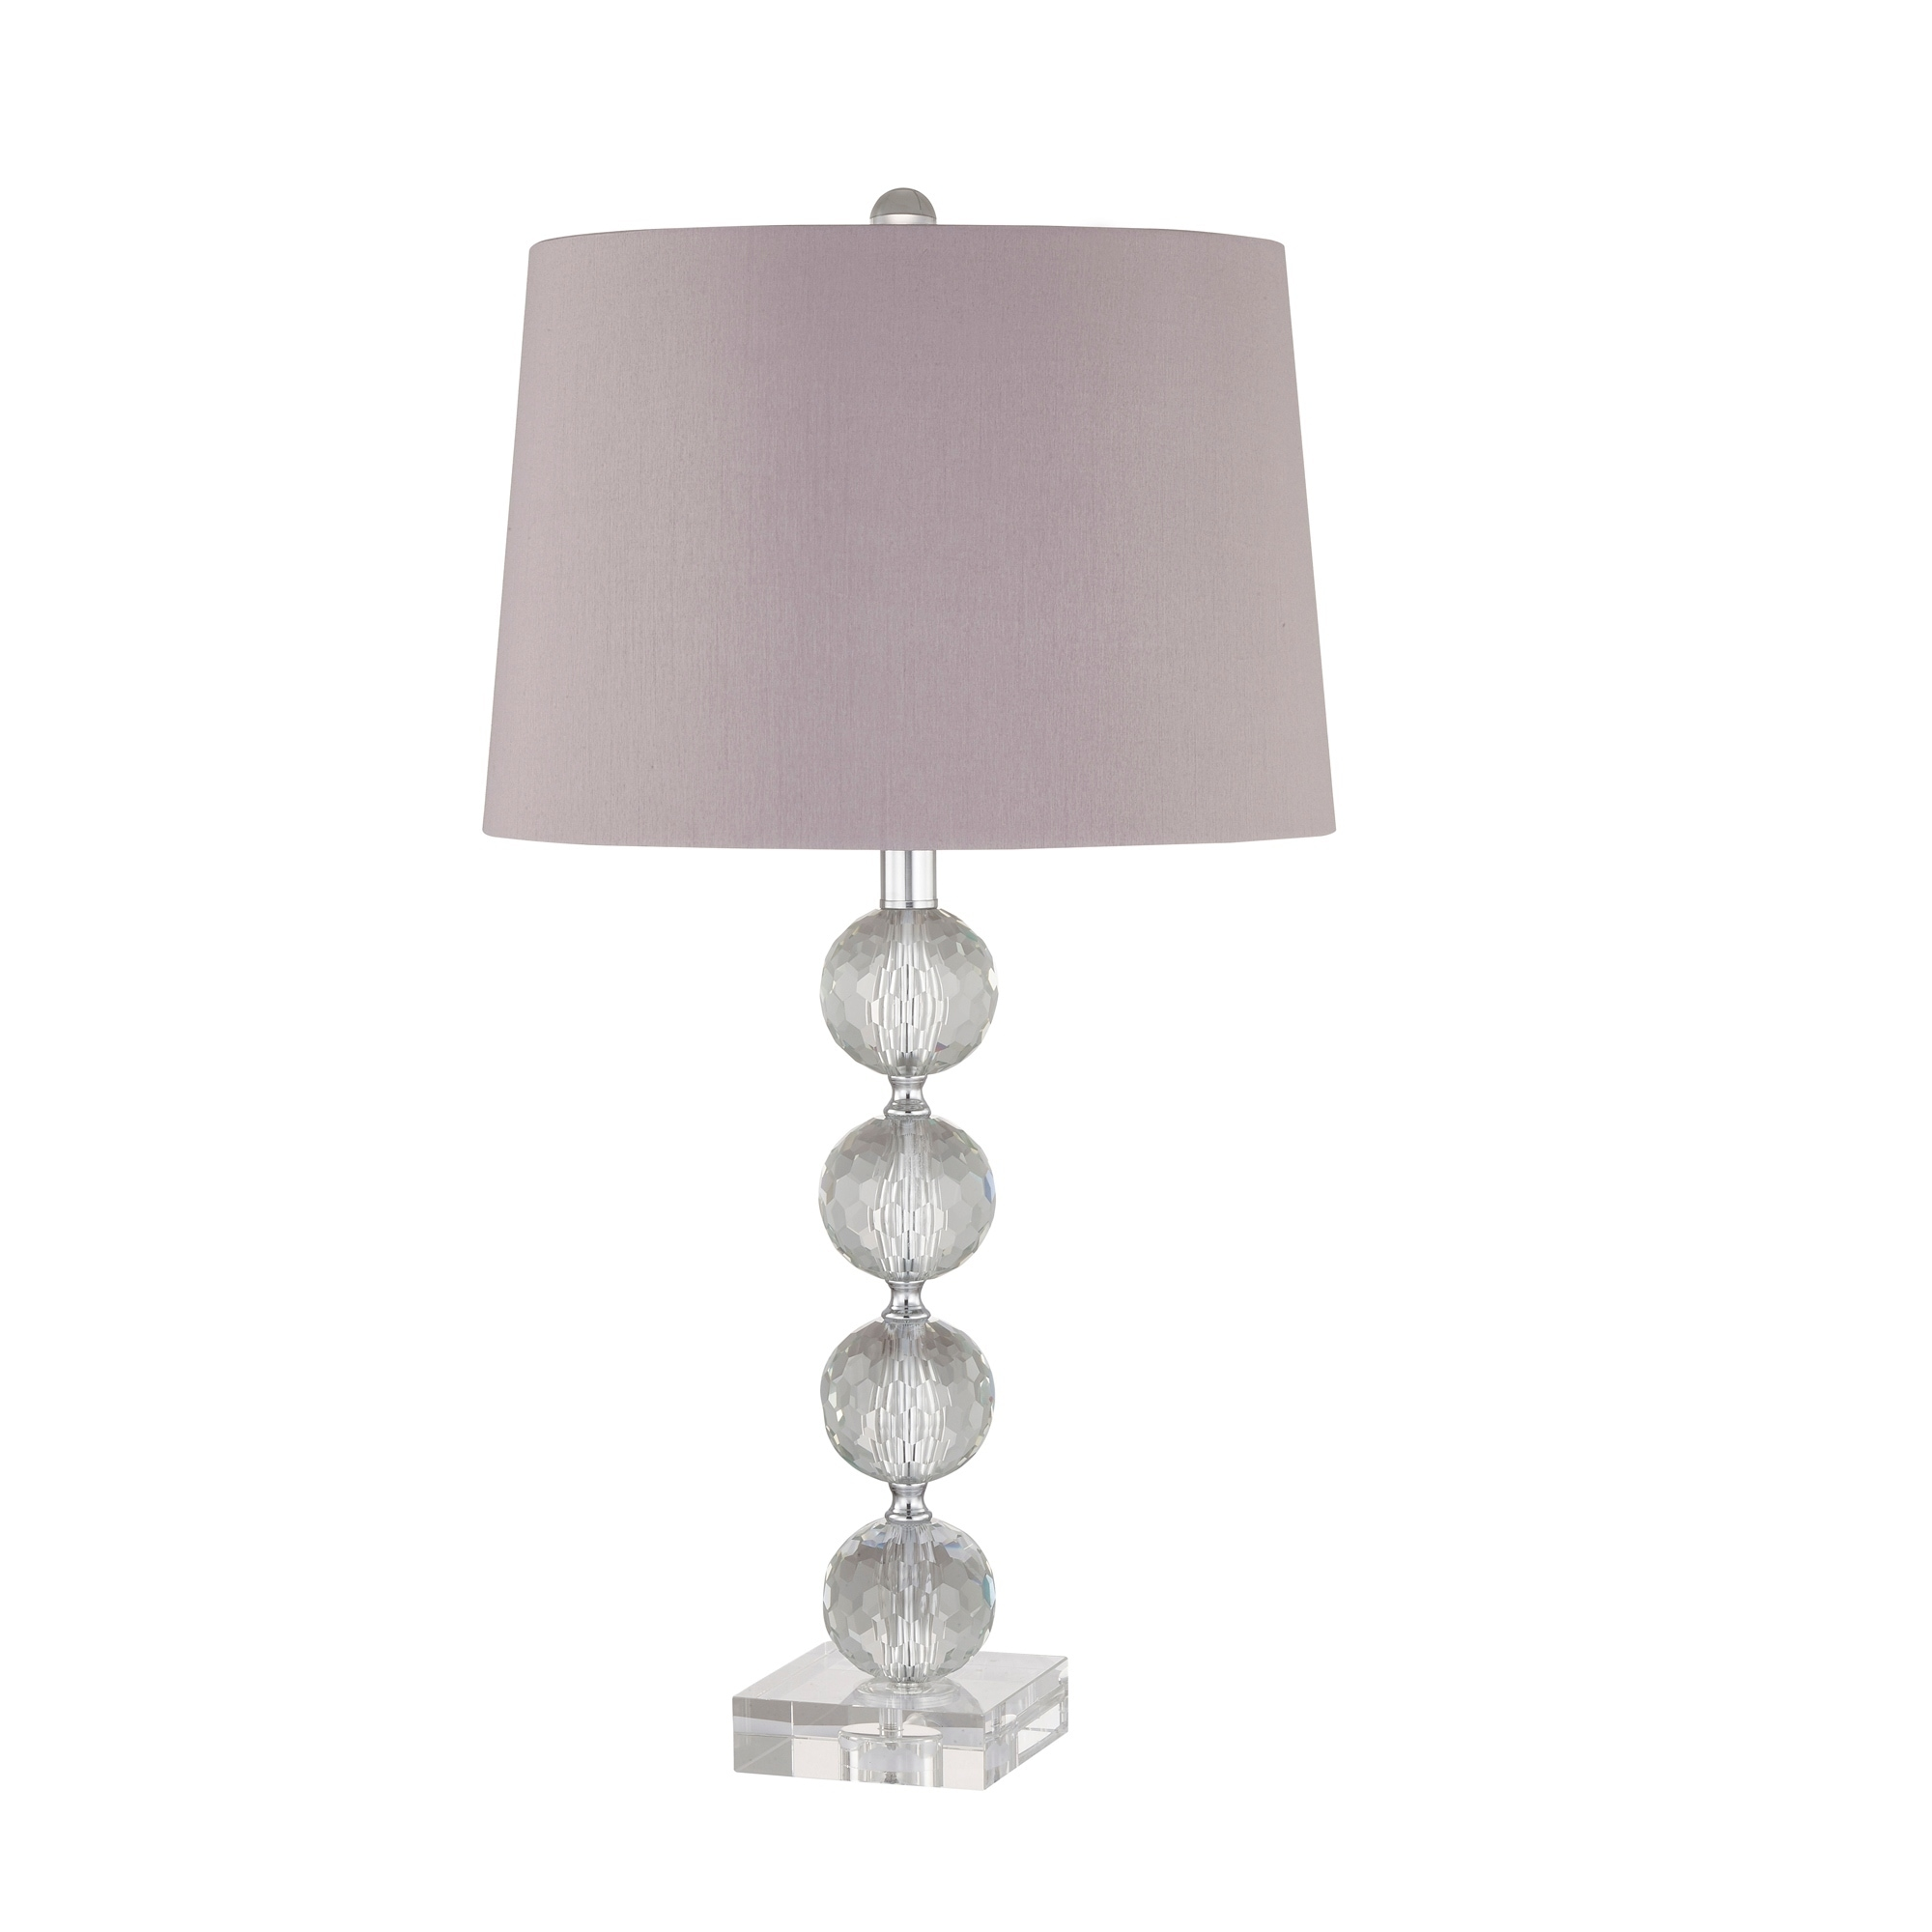 Image of: Shop Black Friday Deals On Glass 28 3 Ball Table Lamp Clear Overstock 28369136